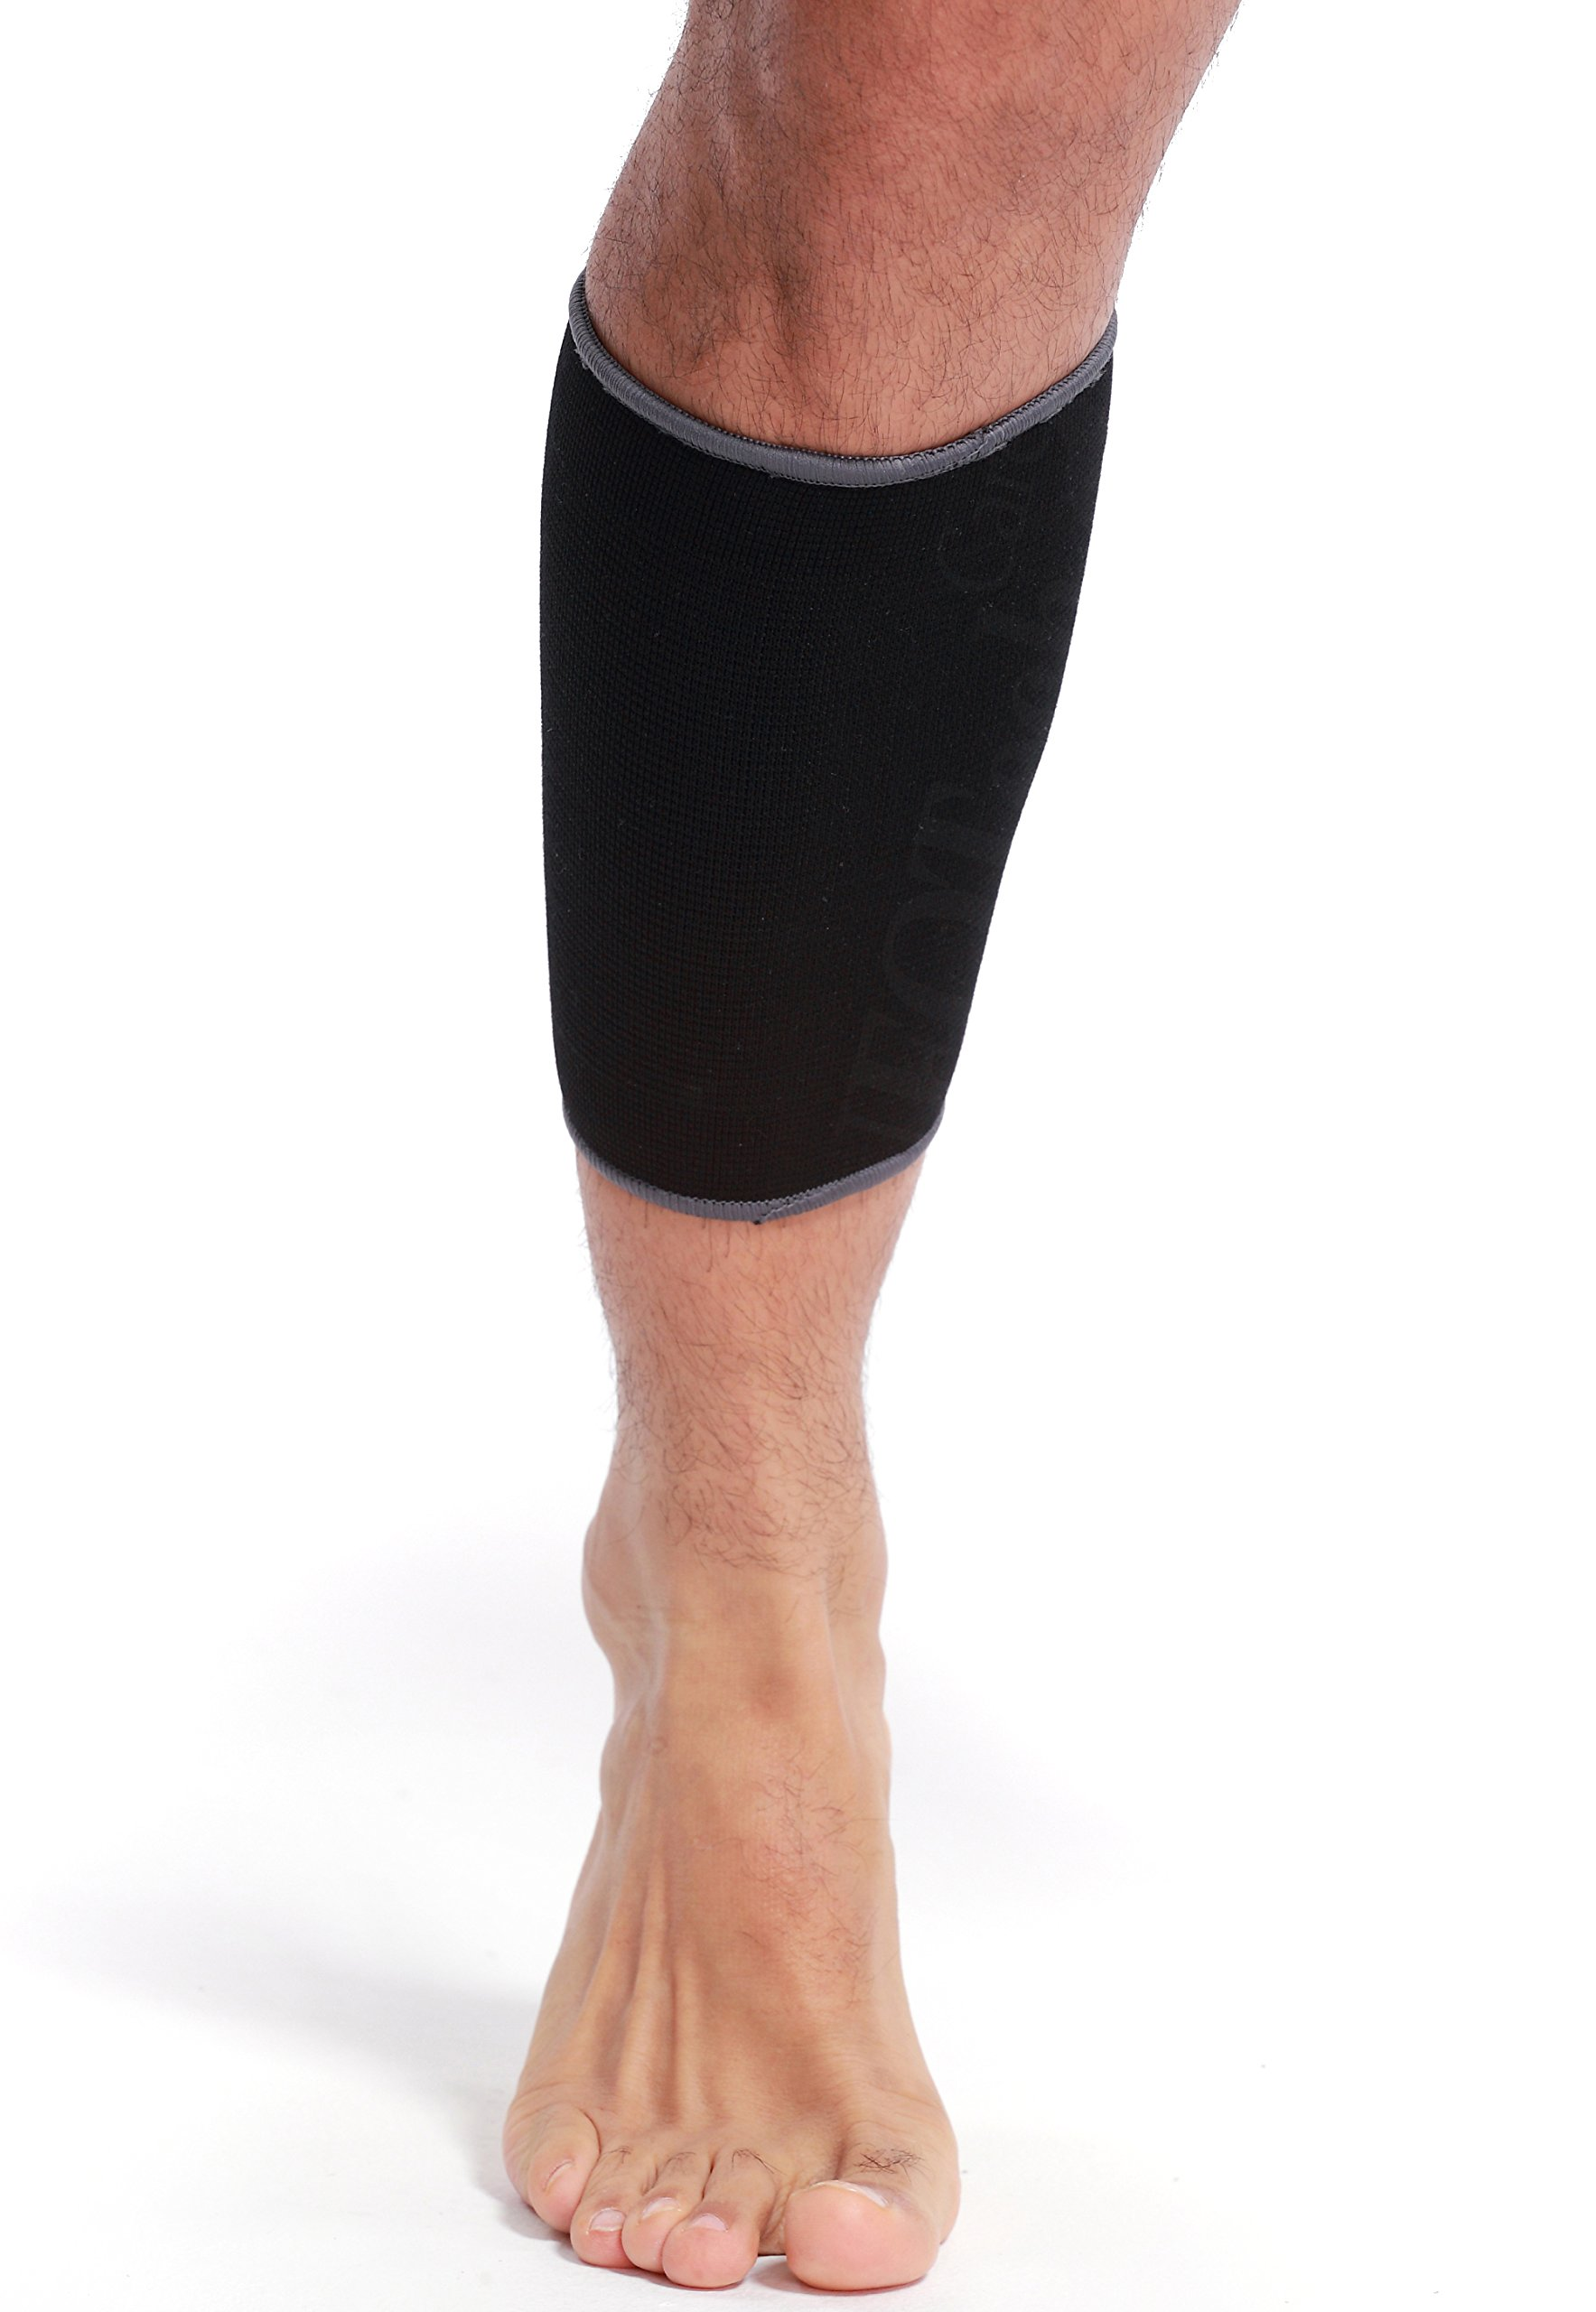 Neotech Care Calf Sleeve Support, Band - Elastic & Breathable Knitted Fabric - Muscle Pain Relief - Medium Compression - Black Color (Size L)